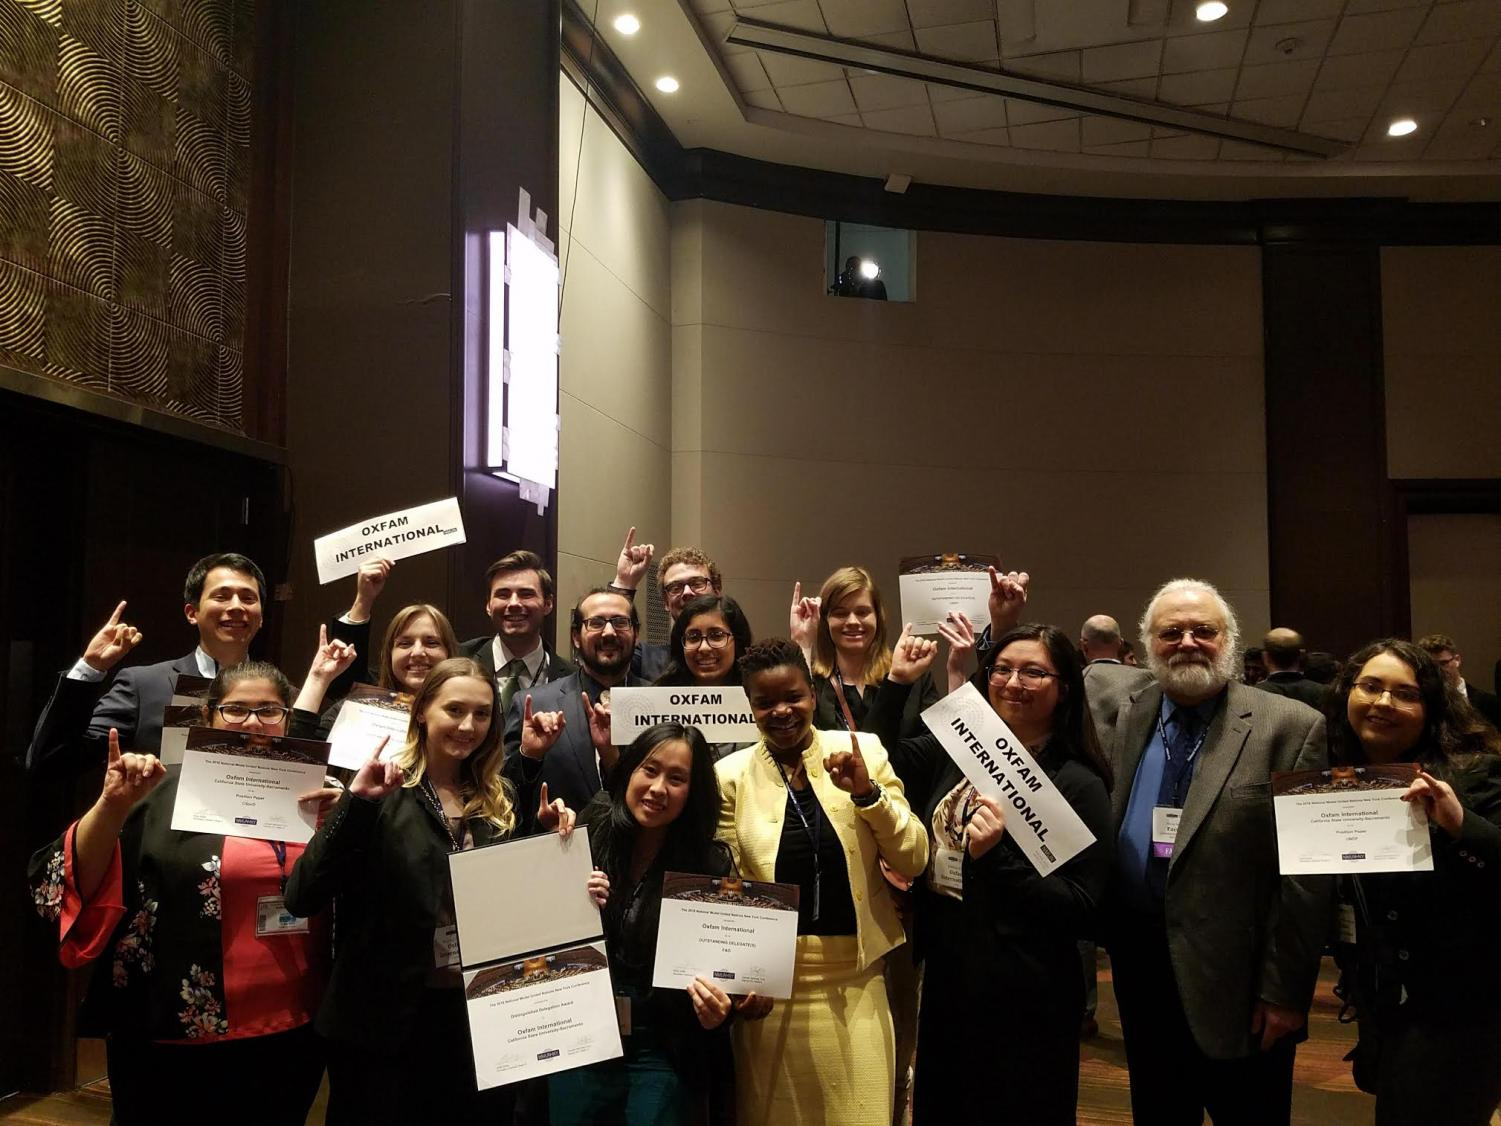 Sacramento State students represented the non-governmental organization Oxfam International at the National Model United Nations conference in New York in March. The students won nine awards during the conference, which lasted from March 18-March 22.